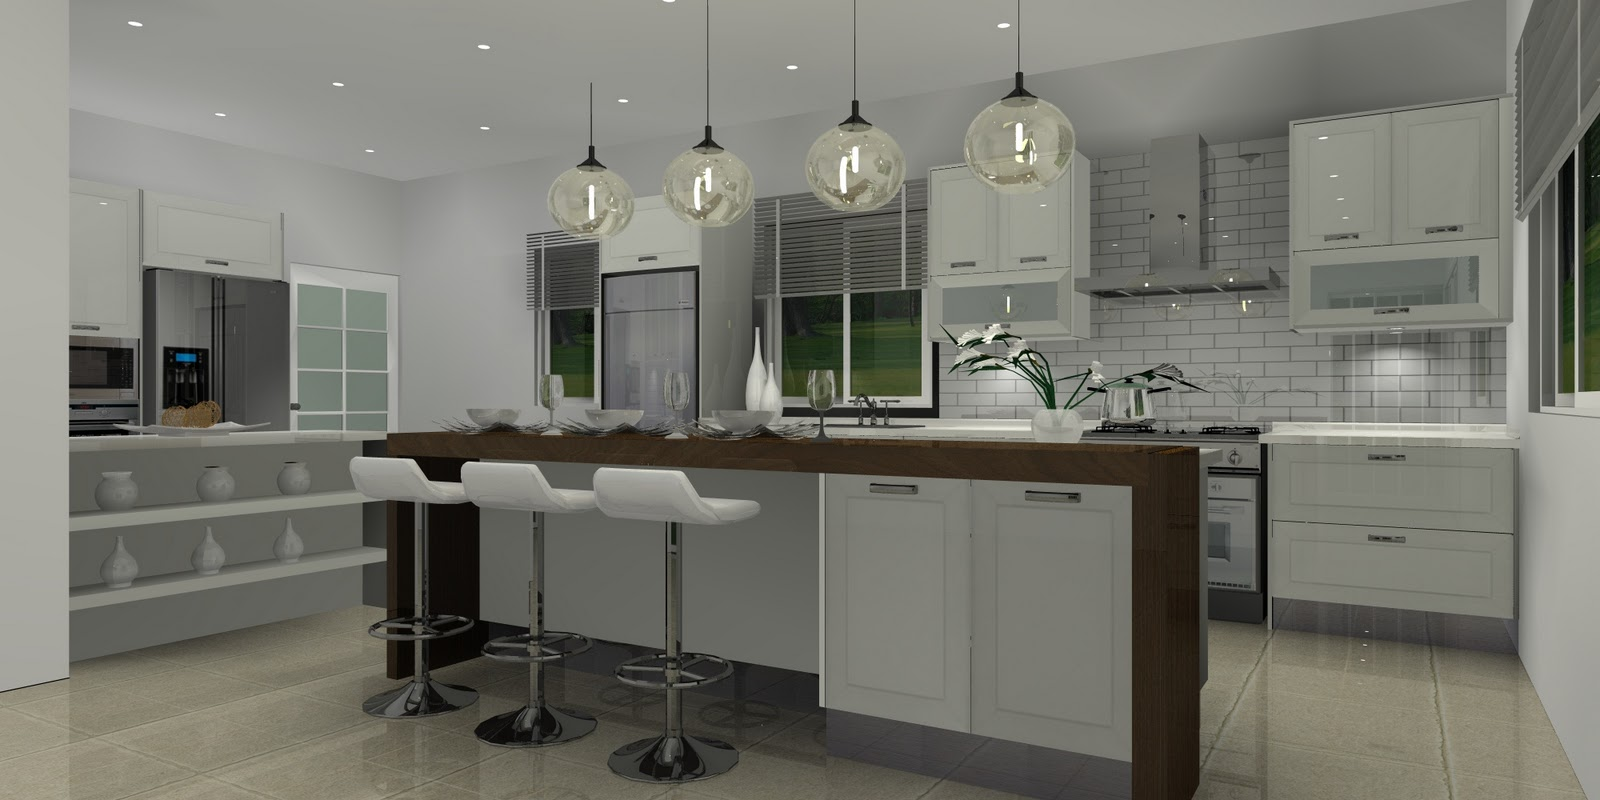 Extension Kitchen Malaysia Joy Studio Design Gallery Best Design